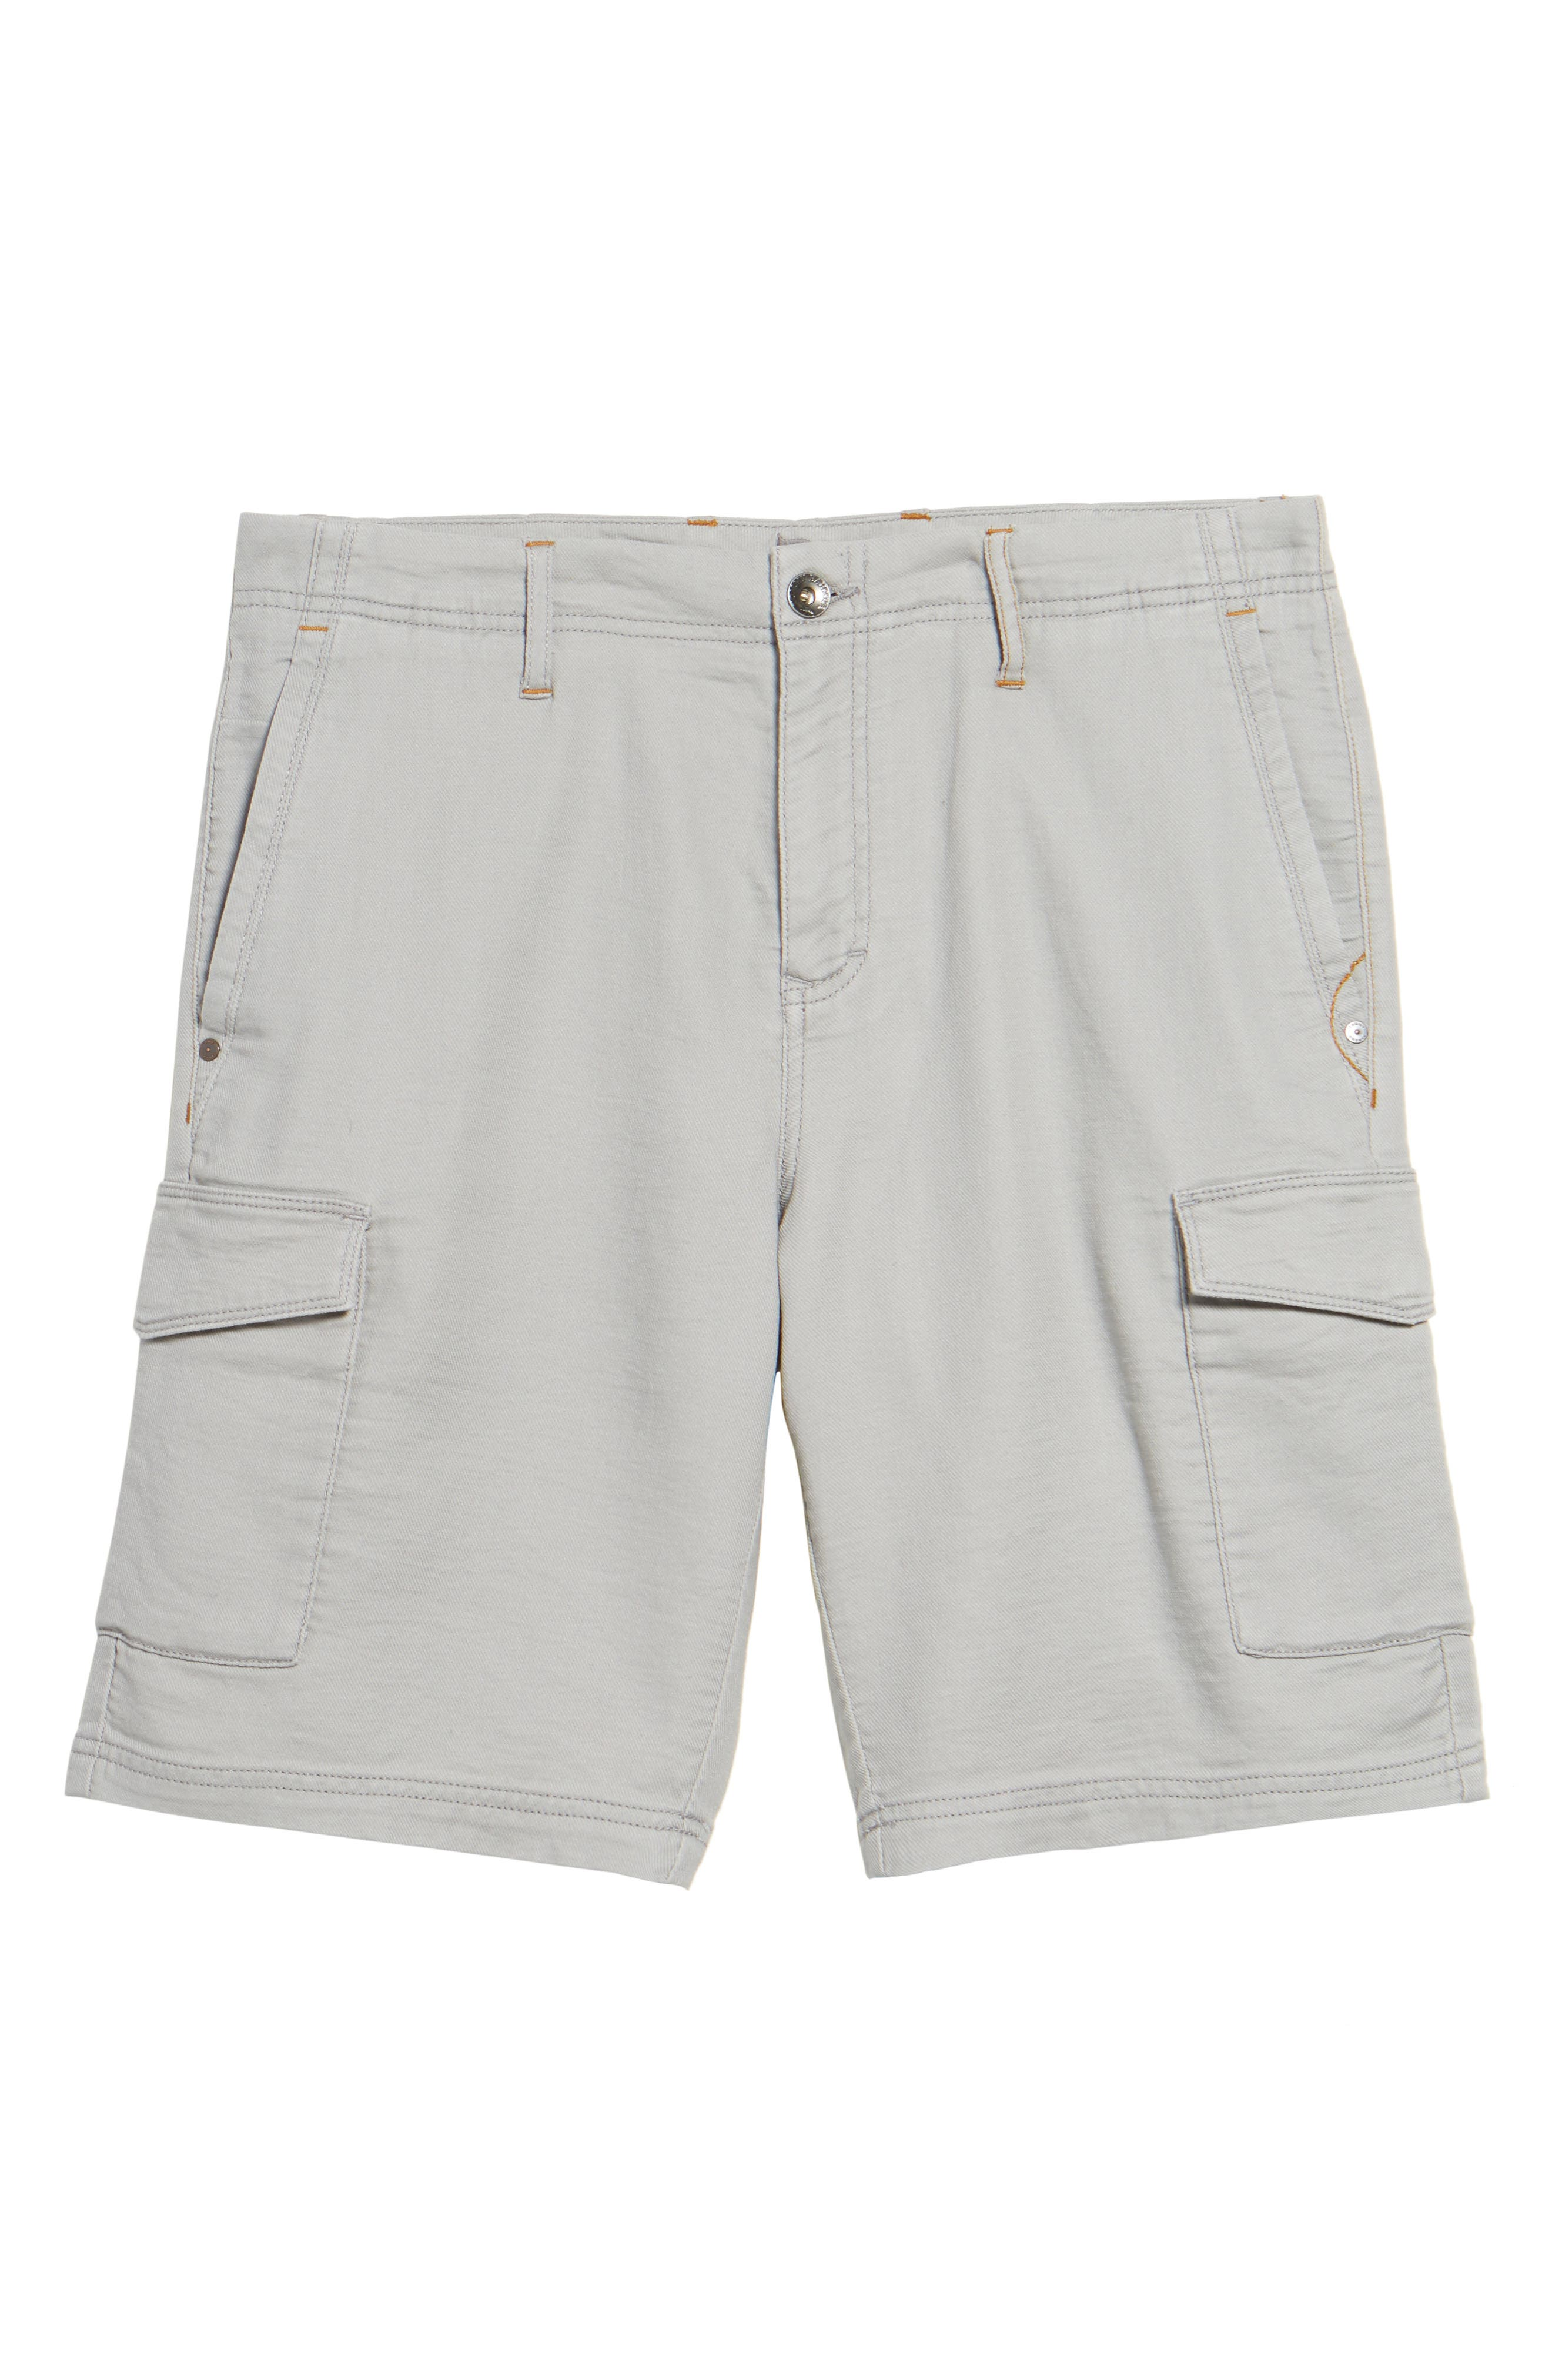 Edgewood Cargo Shorts,                             Alternate thumbnail 6, color,                             Argent